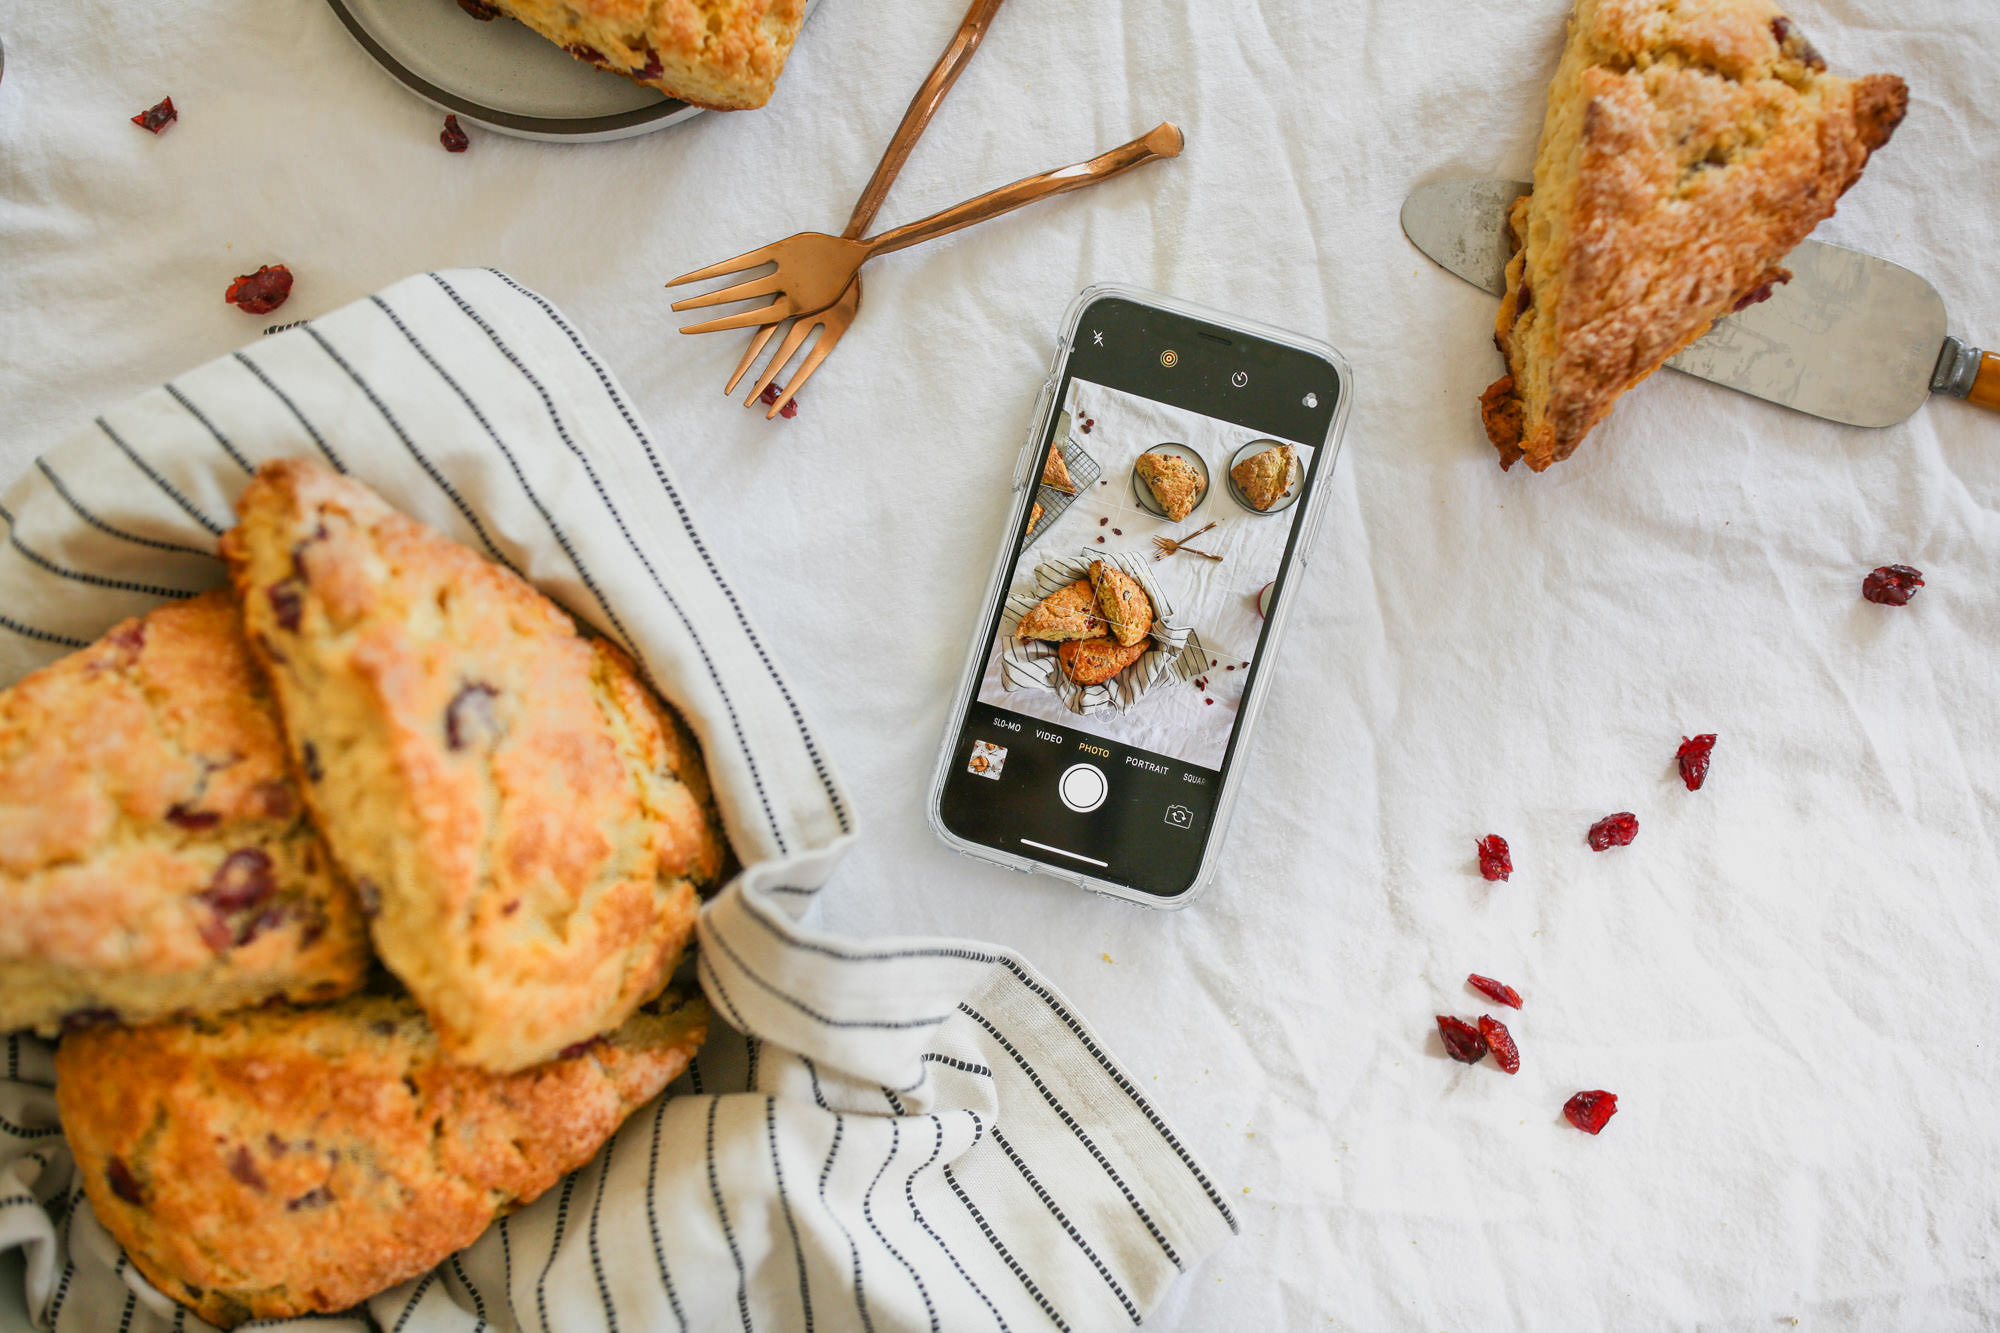 Taking an iPhone Photo of Buttermilk Scones With Raisins